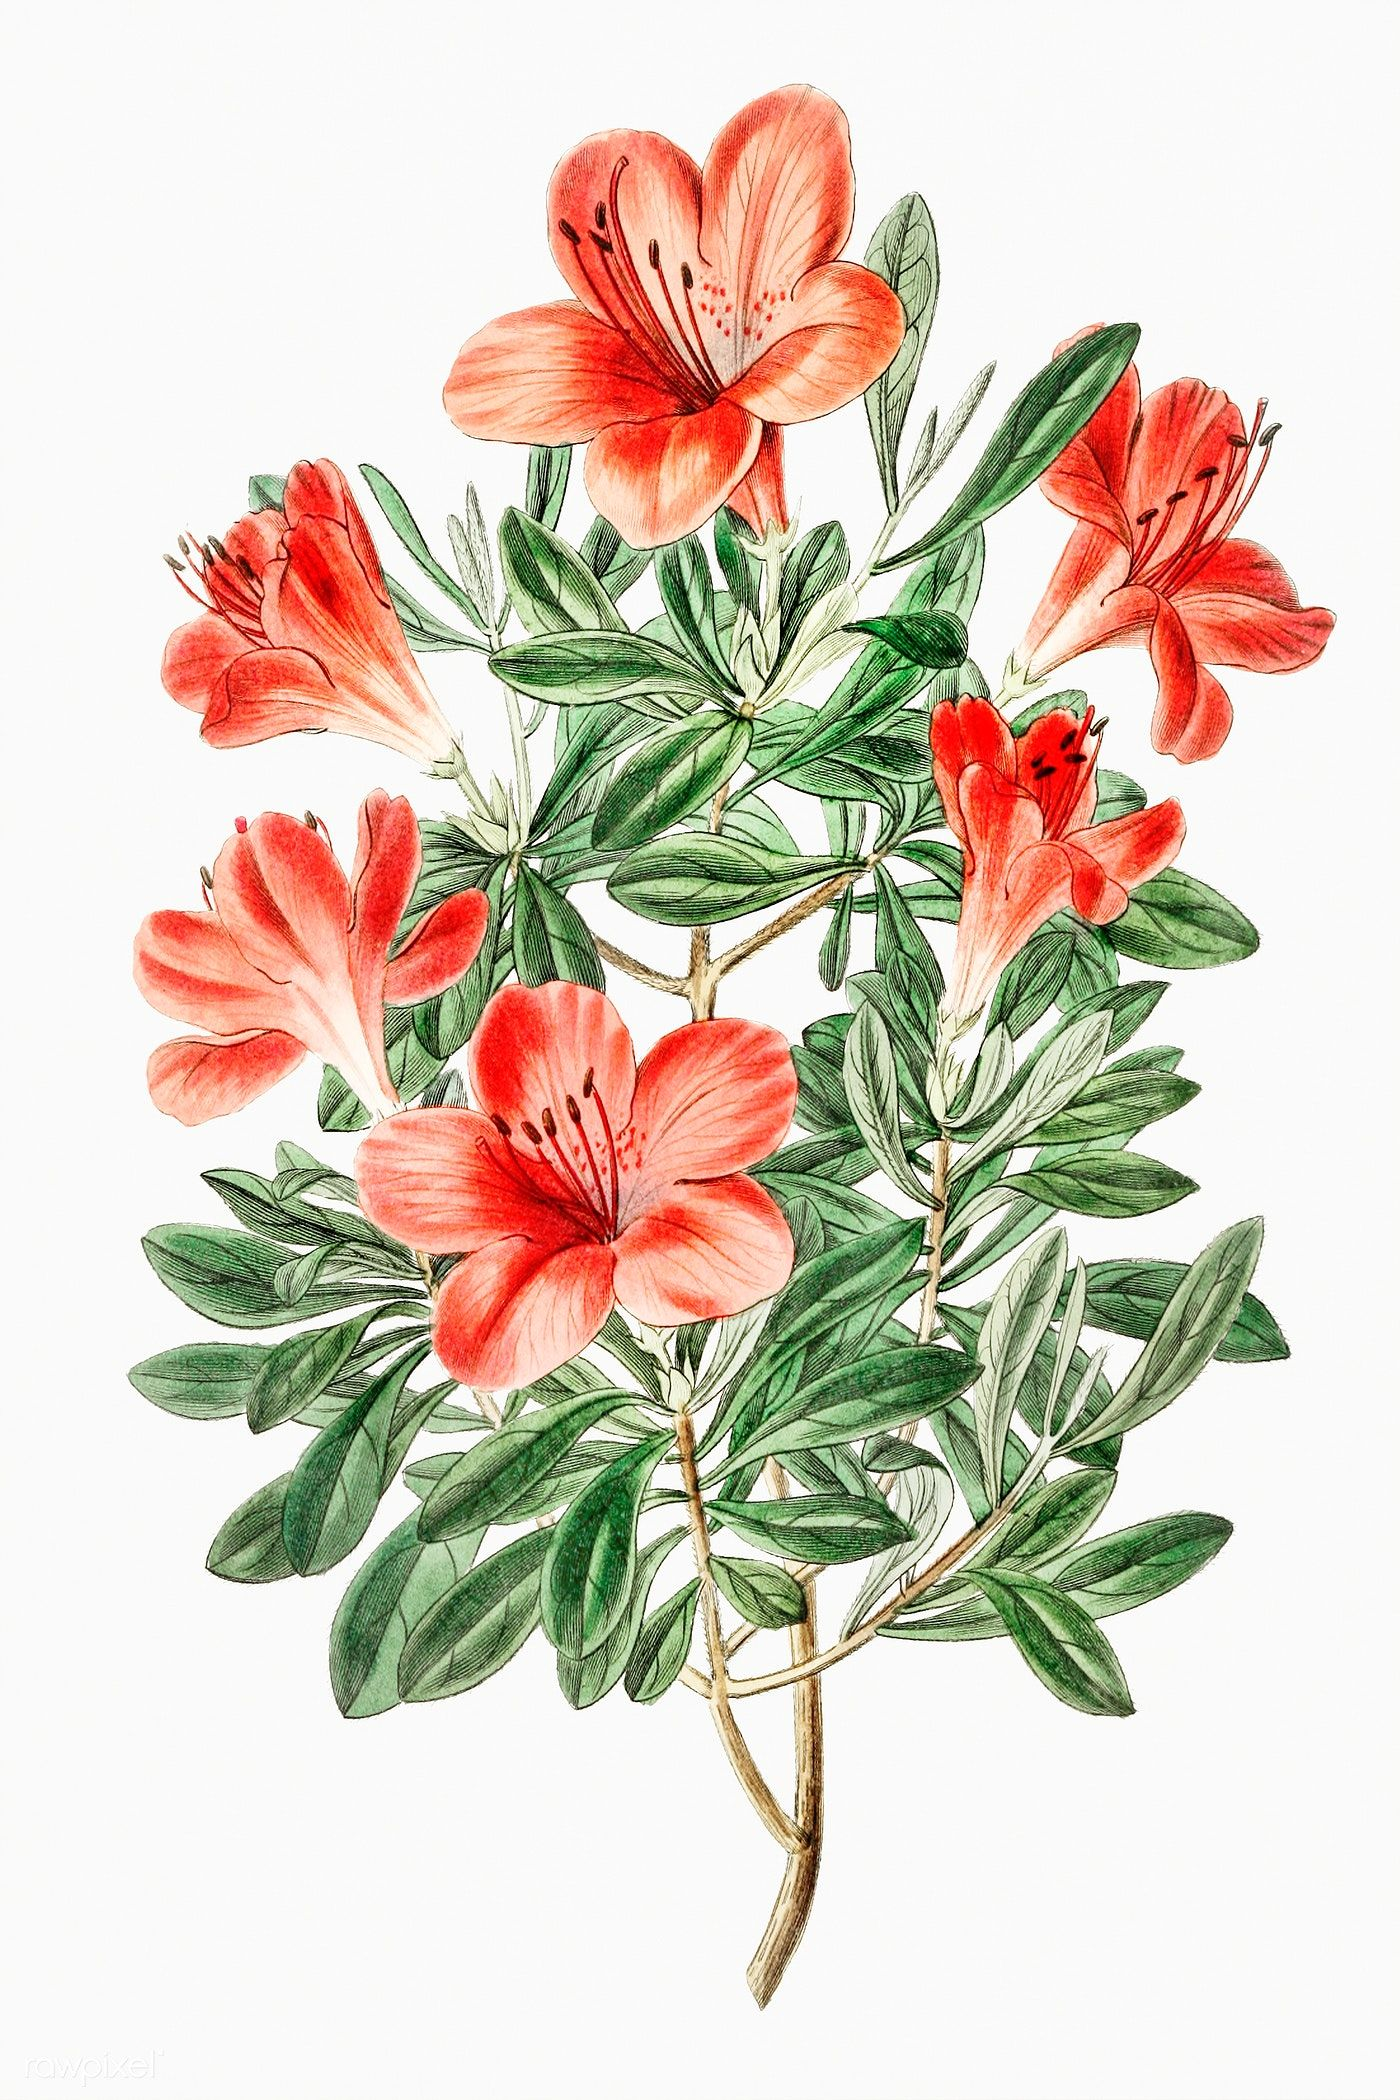 Vintage Brick Red Chinese Azalea Flower Branch For Decoration Premium Image By Rawpixel Com Azalea Flower Flower Drawing Flower Sketches